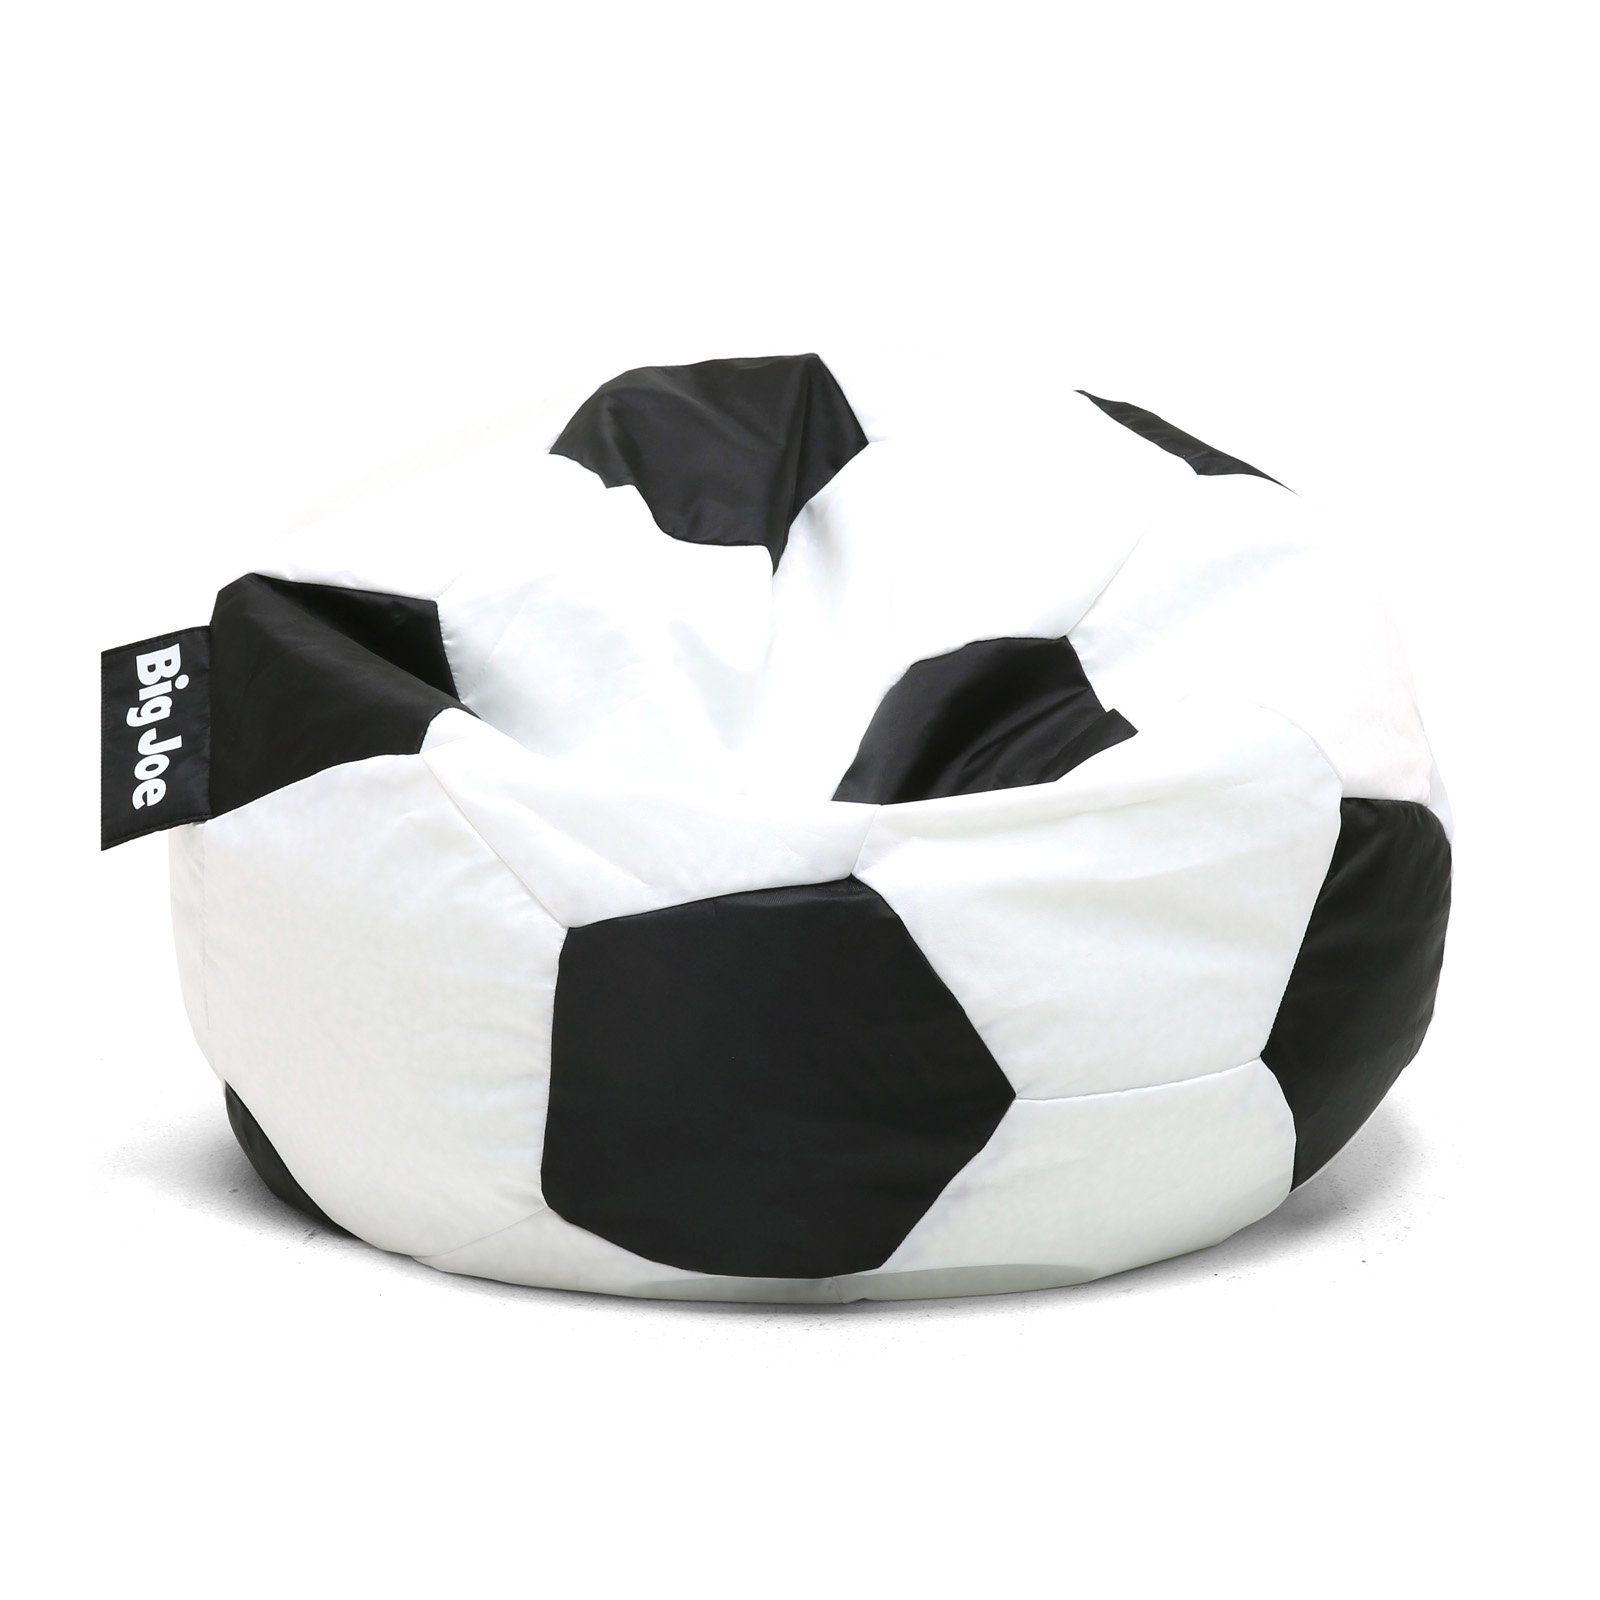 Marvelous Big Joe Soccer Ball Bean Bag Chair Products In 2019 Bean Ocoug Best Dining Table And Chair Ideas Images Ocougorg